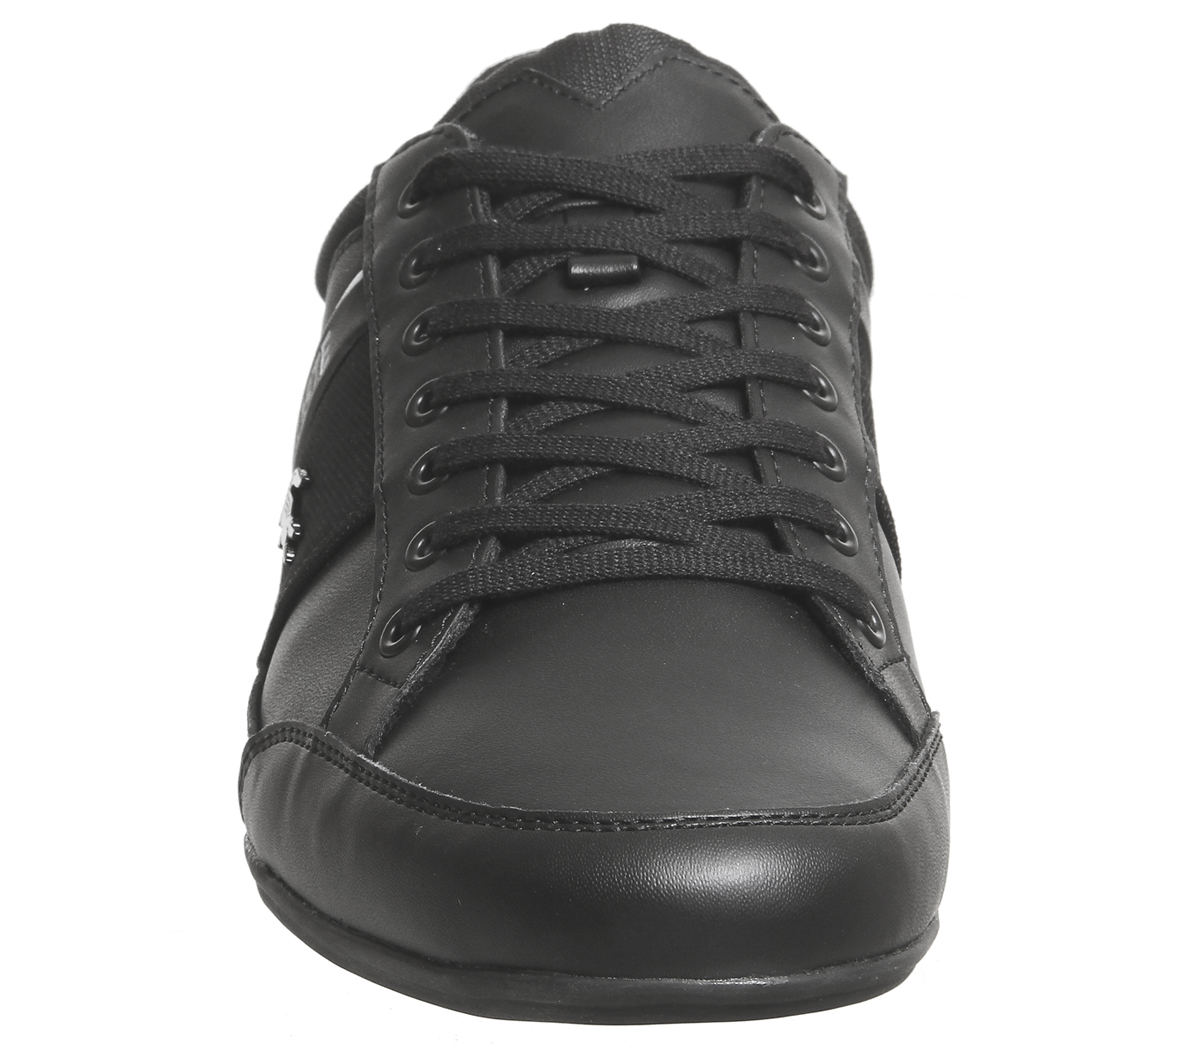 Lacoste Chaymon Trainers BLACK Weiß Schuhes Trainers Schuhes Weiß 72534e